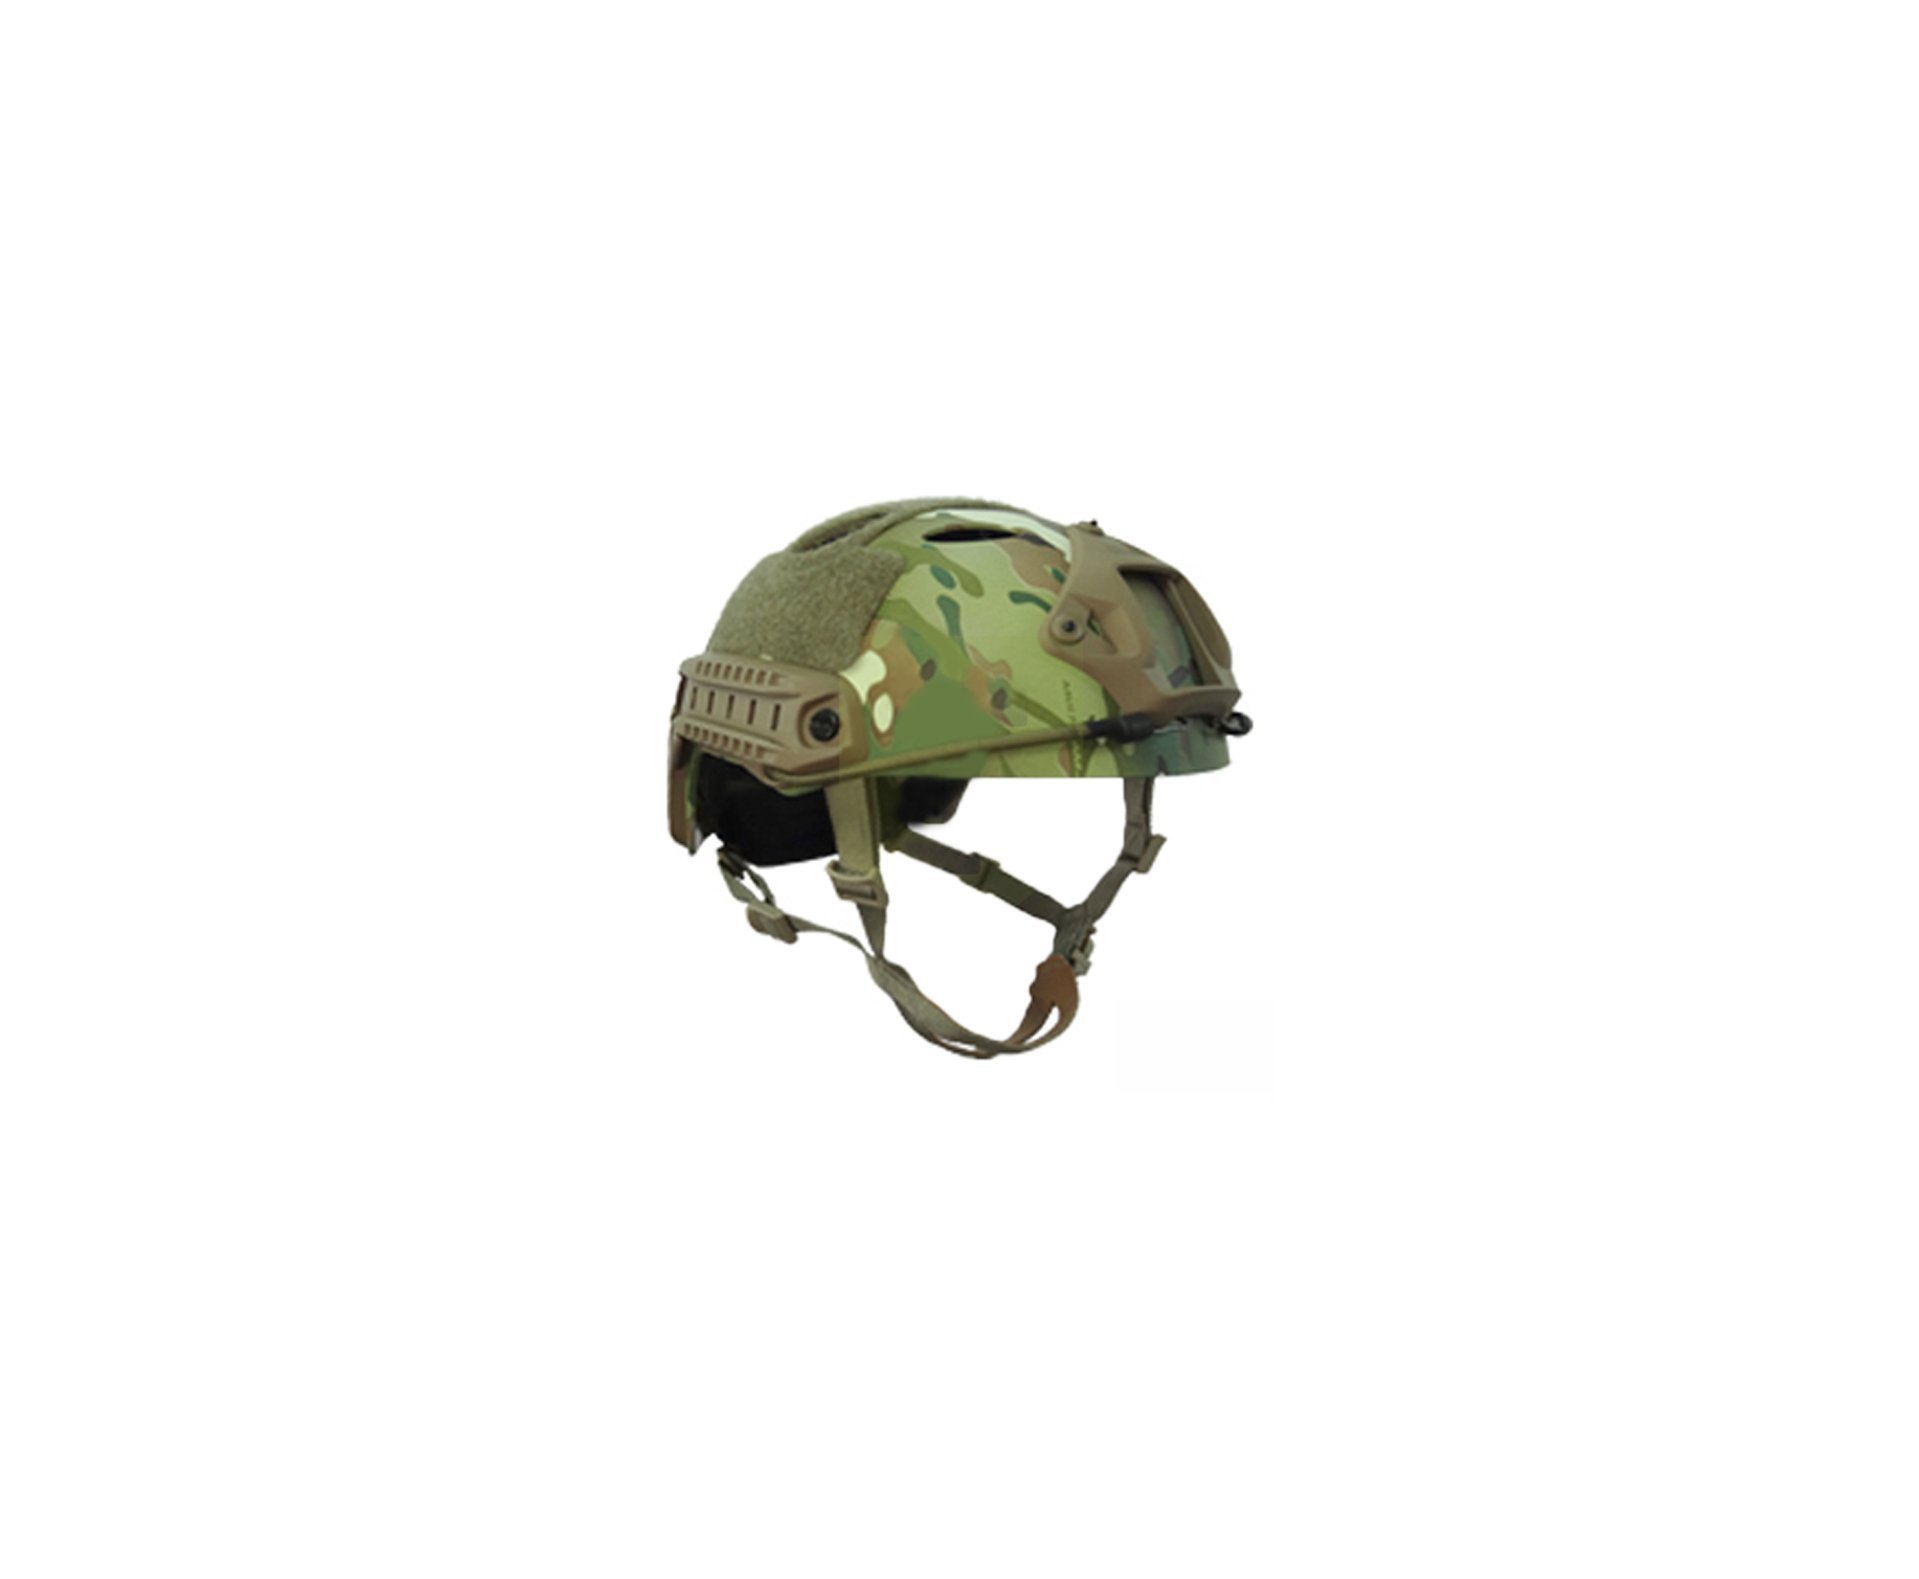 Capacete Tático Para Airsoft/paintball Mod Fast-p1 Multican